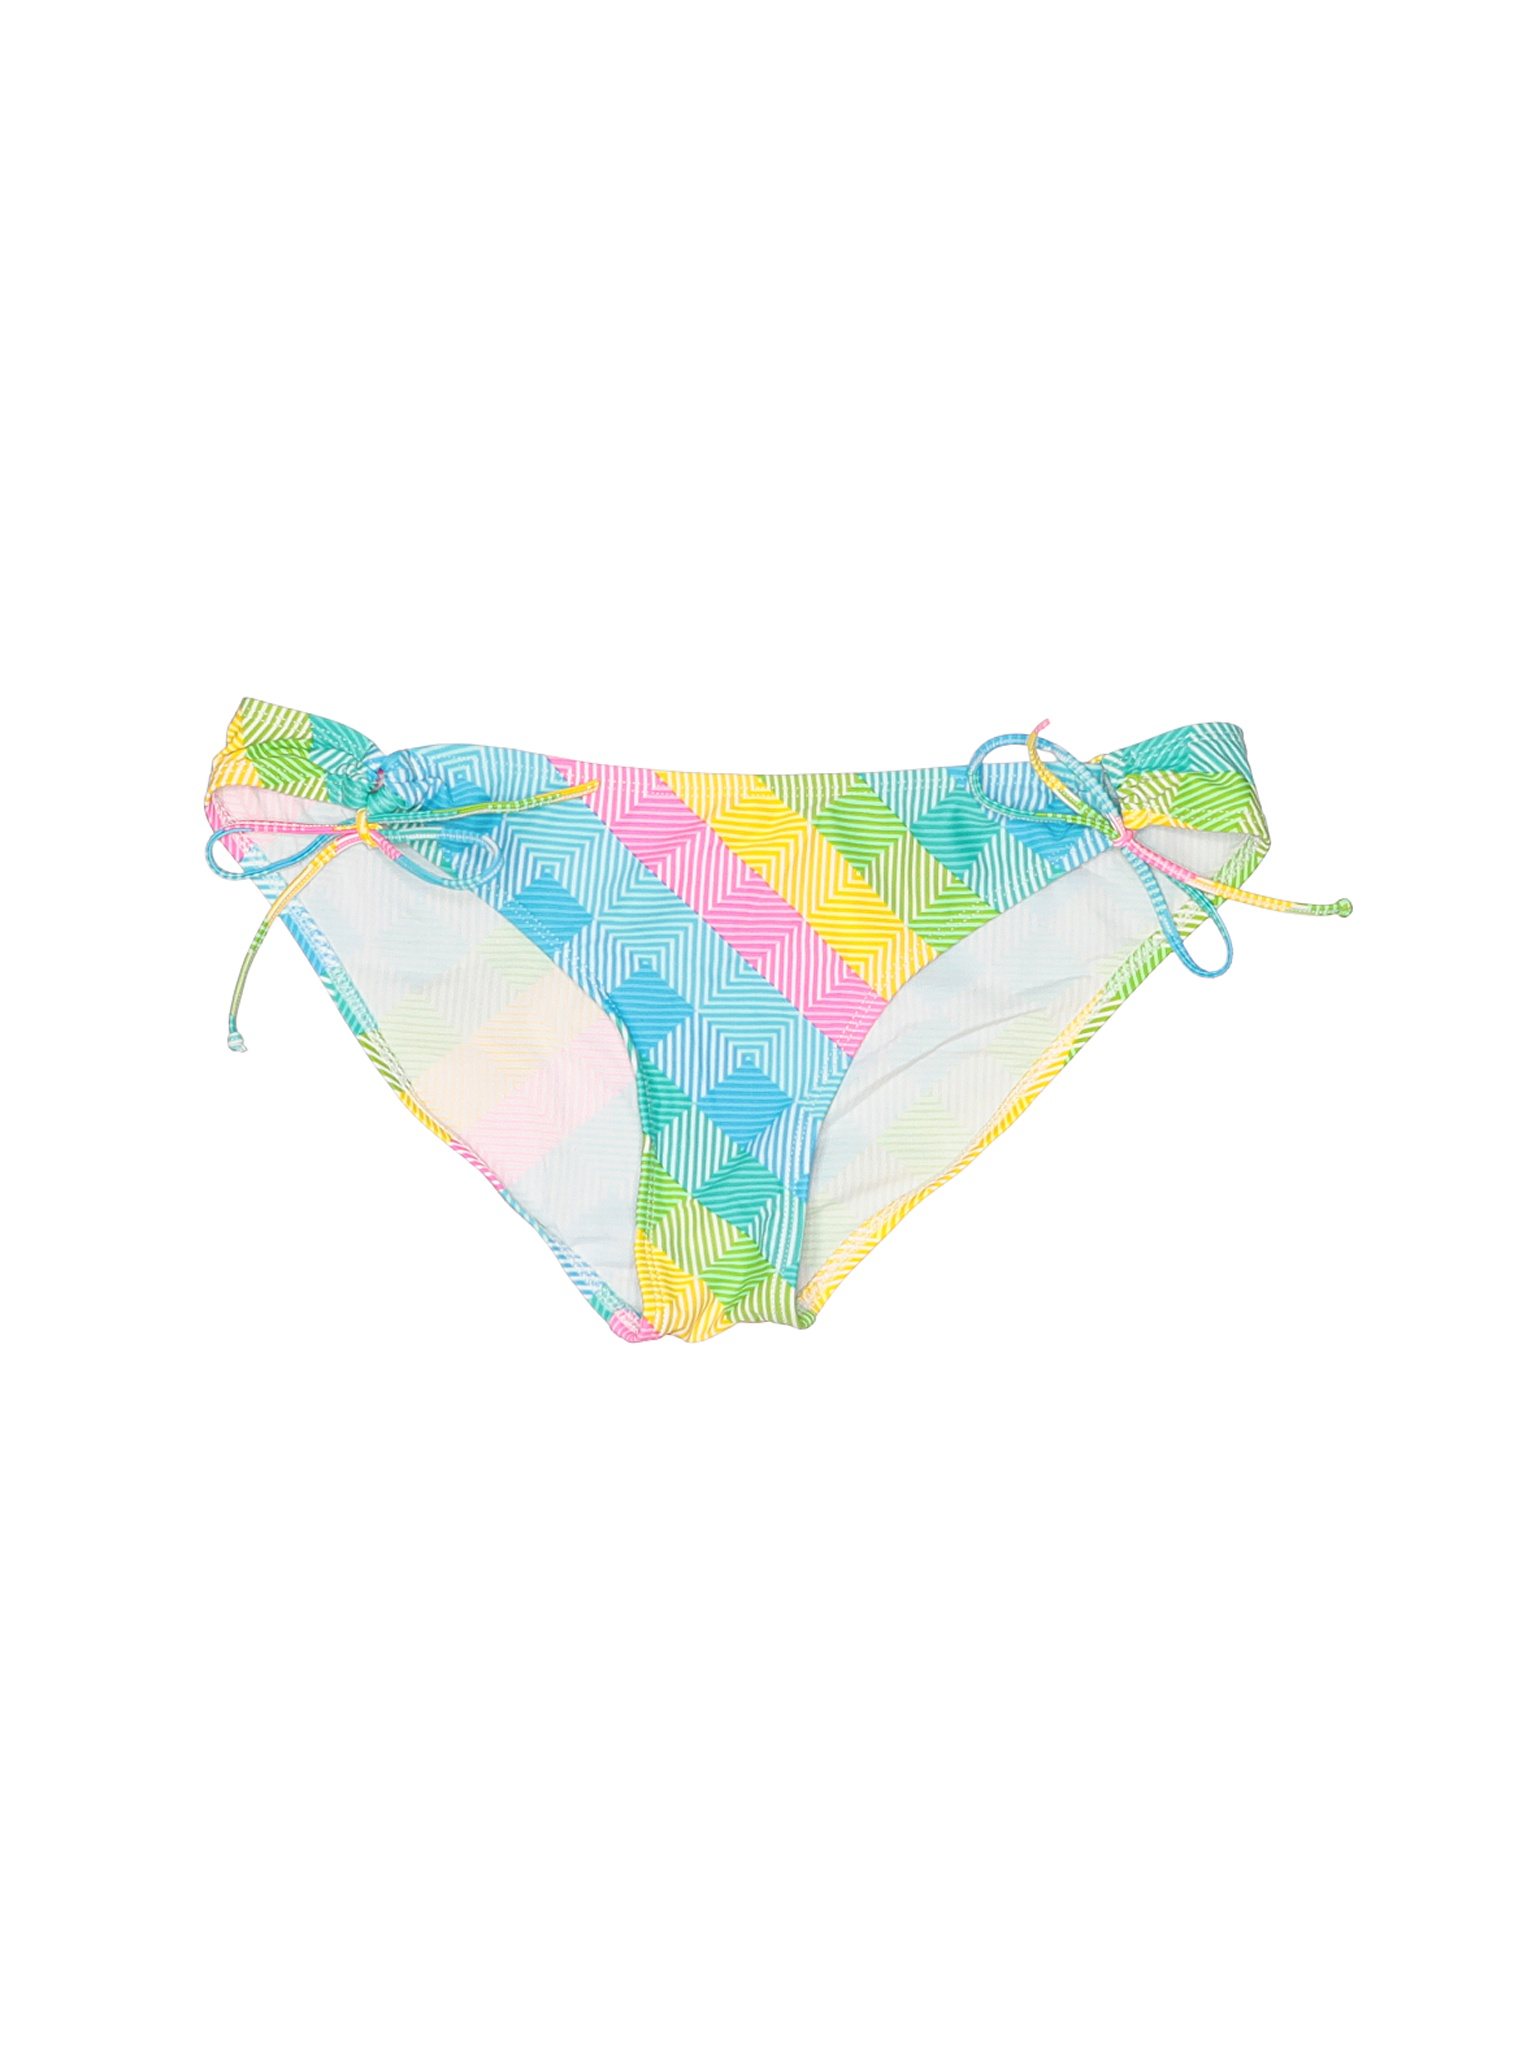 Body Glove Women/'s Forecast Fiji Low Rise Cheeky Bikini Bottom